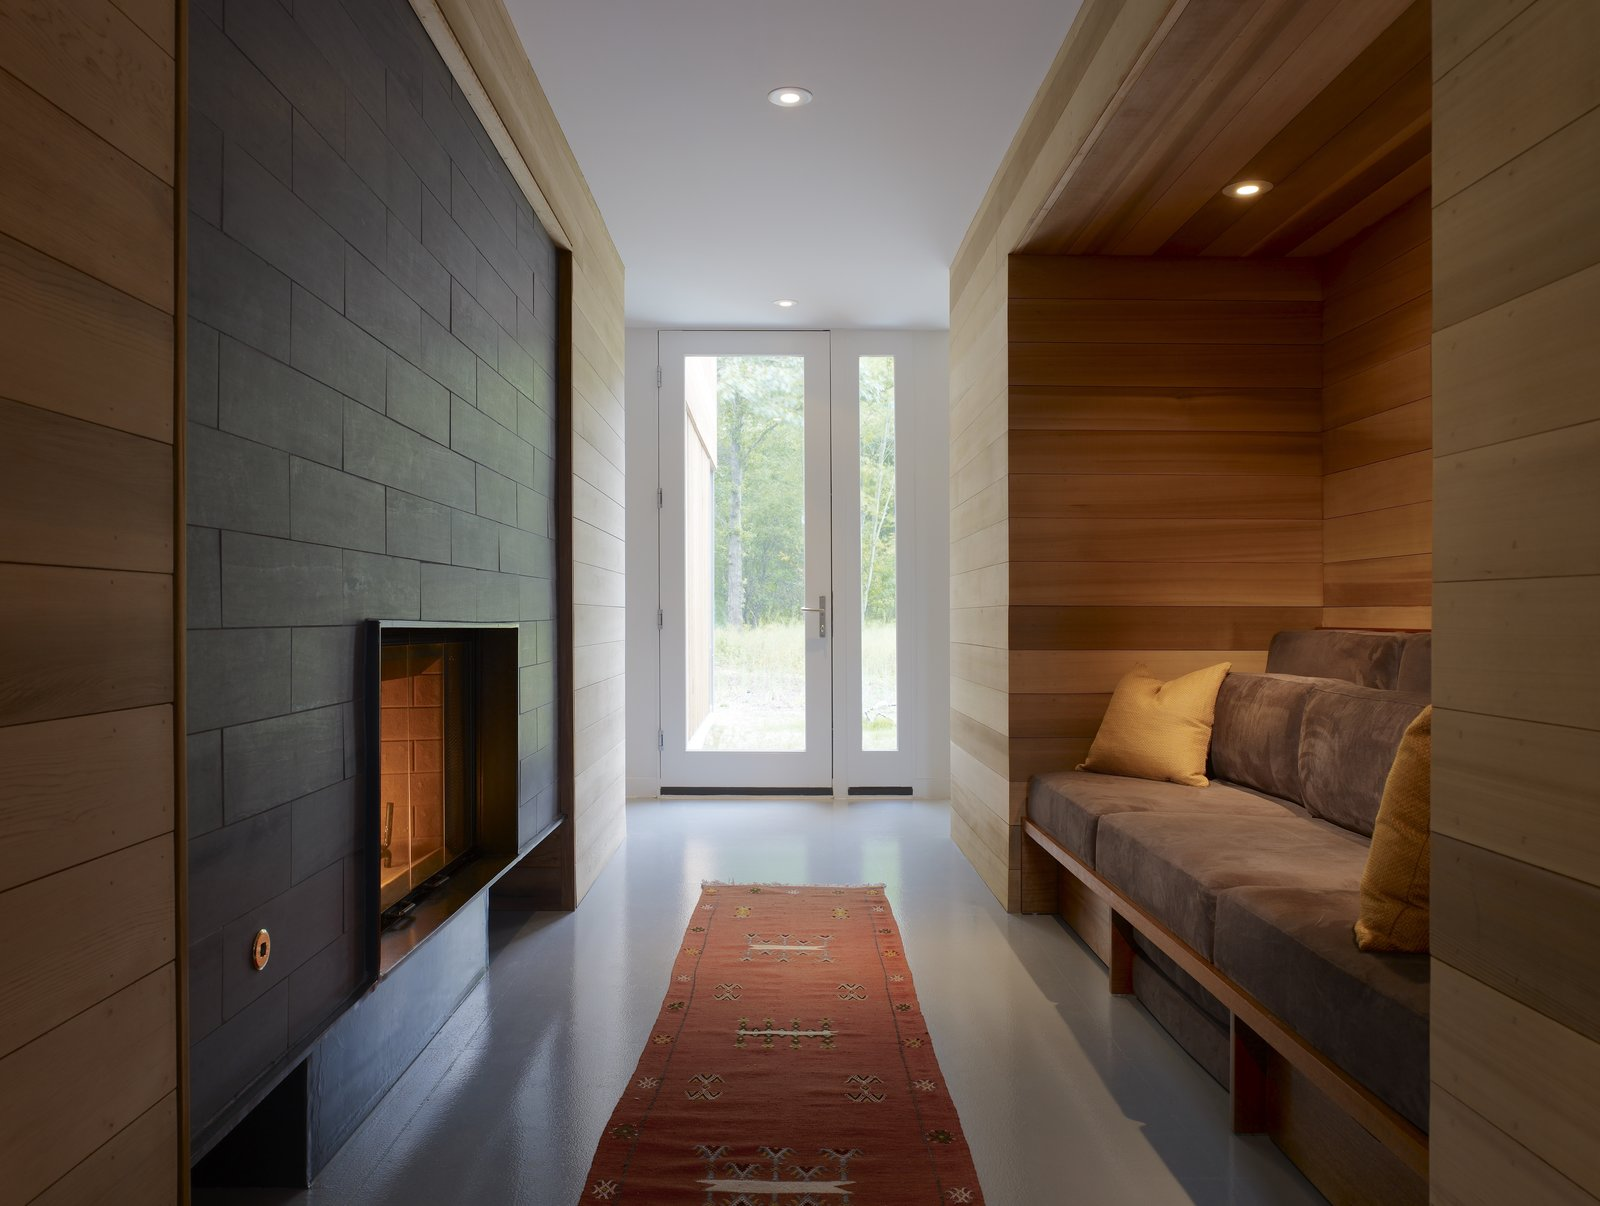 Entering through the front door leads you to an inglenook, where Lynch installed a fireplace and a custom built-in seating area that's surrounded by red cedar.